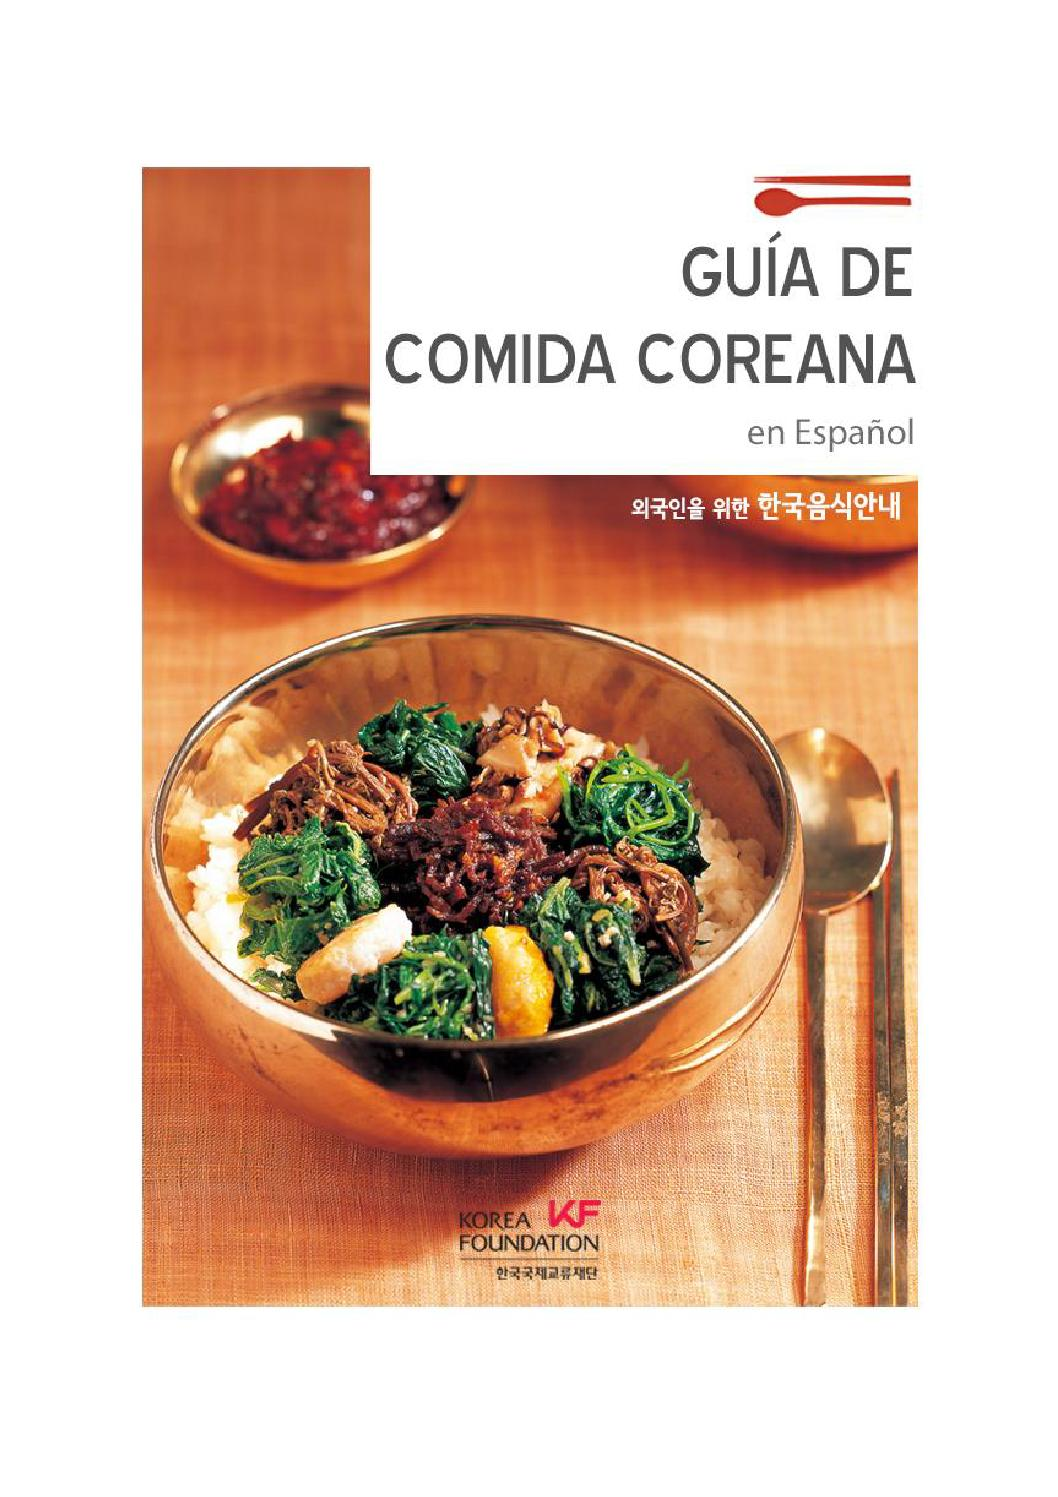 Korean Food Guide 800 (Spanish) by The Korea Foundation - issuu